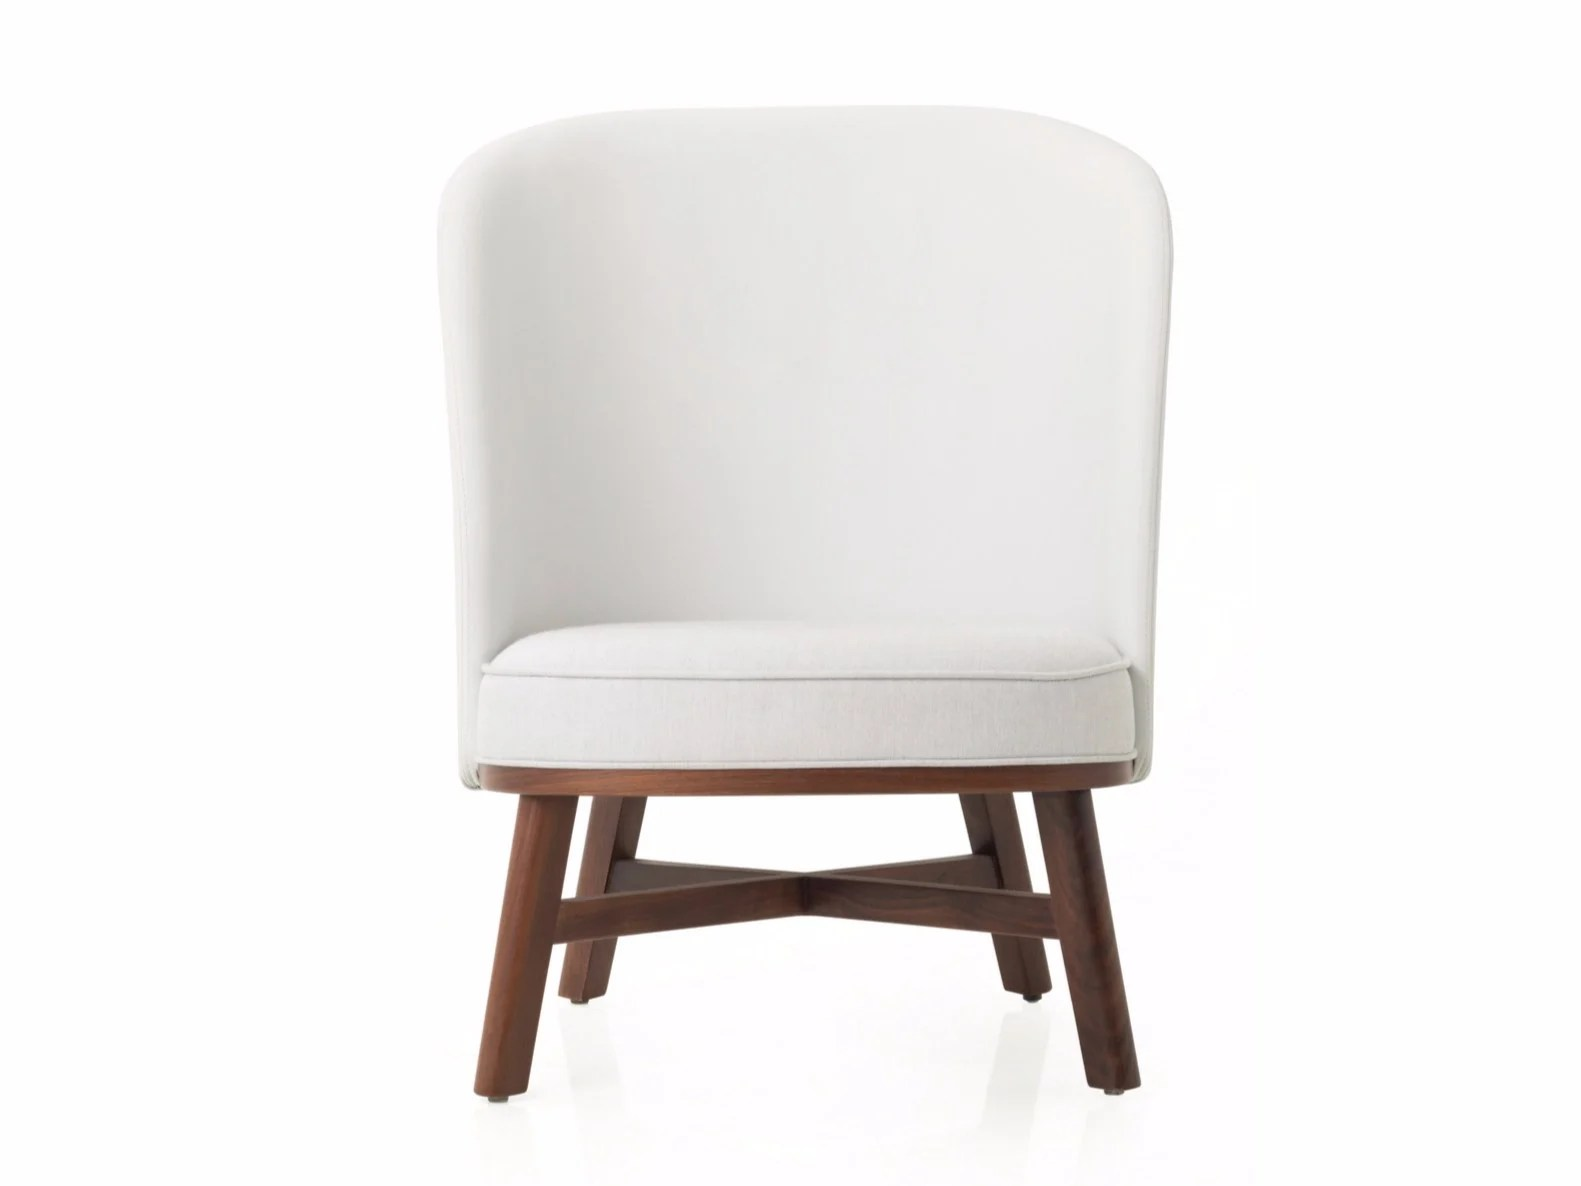 chair design research ingenuity high 3 in 1 slate lounge bund collection by stellar